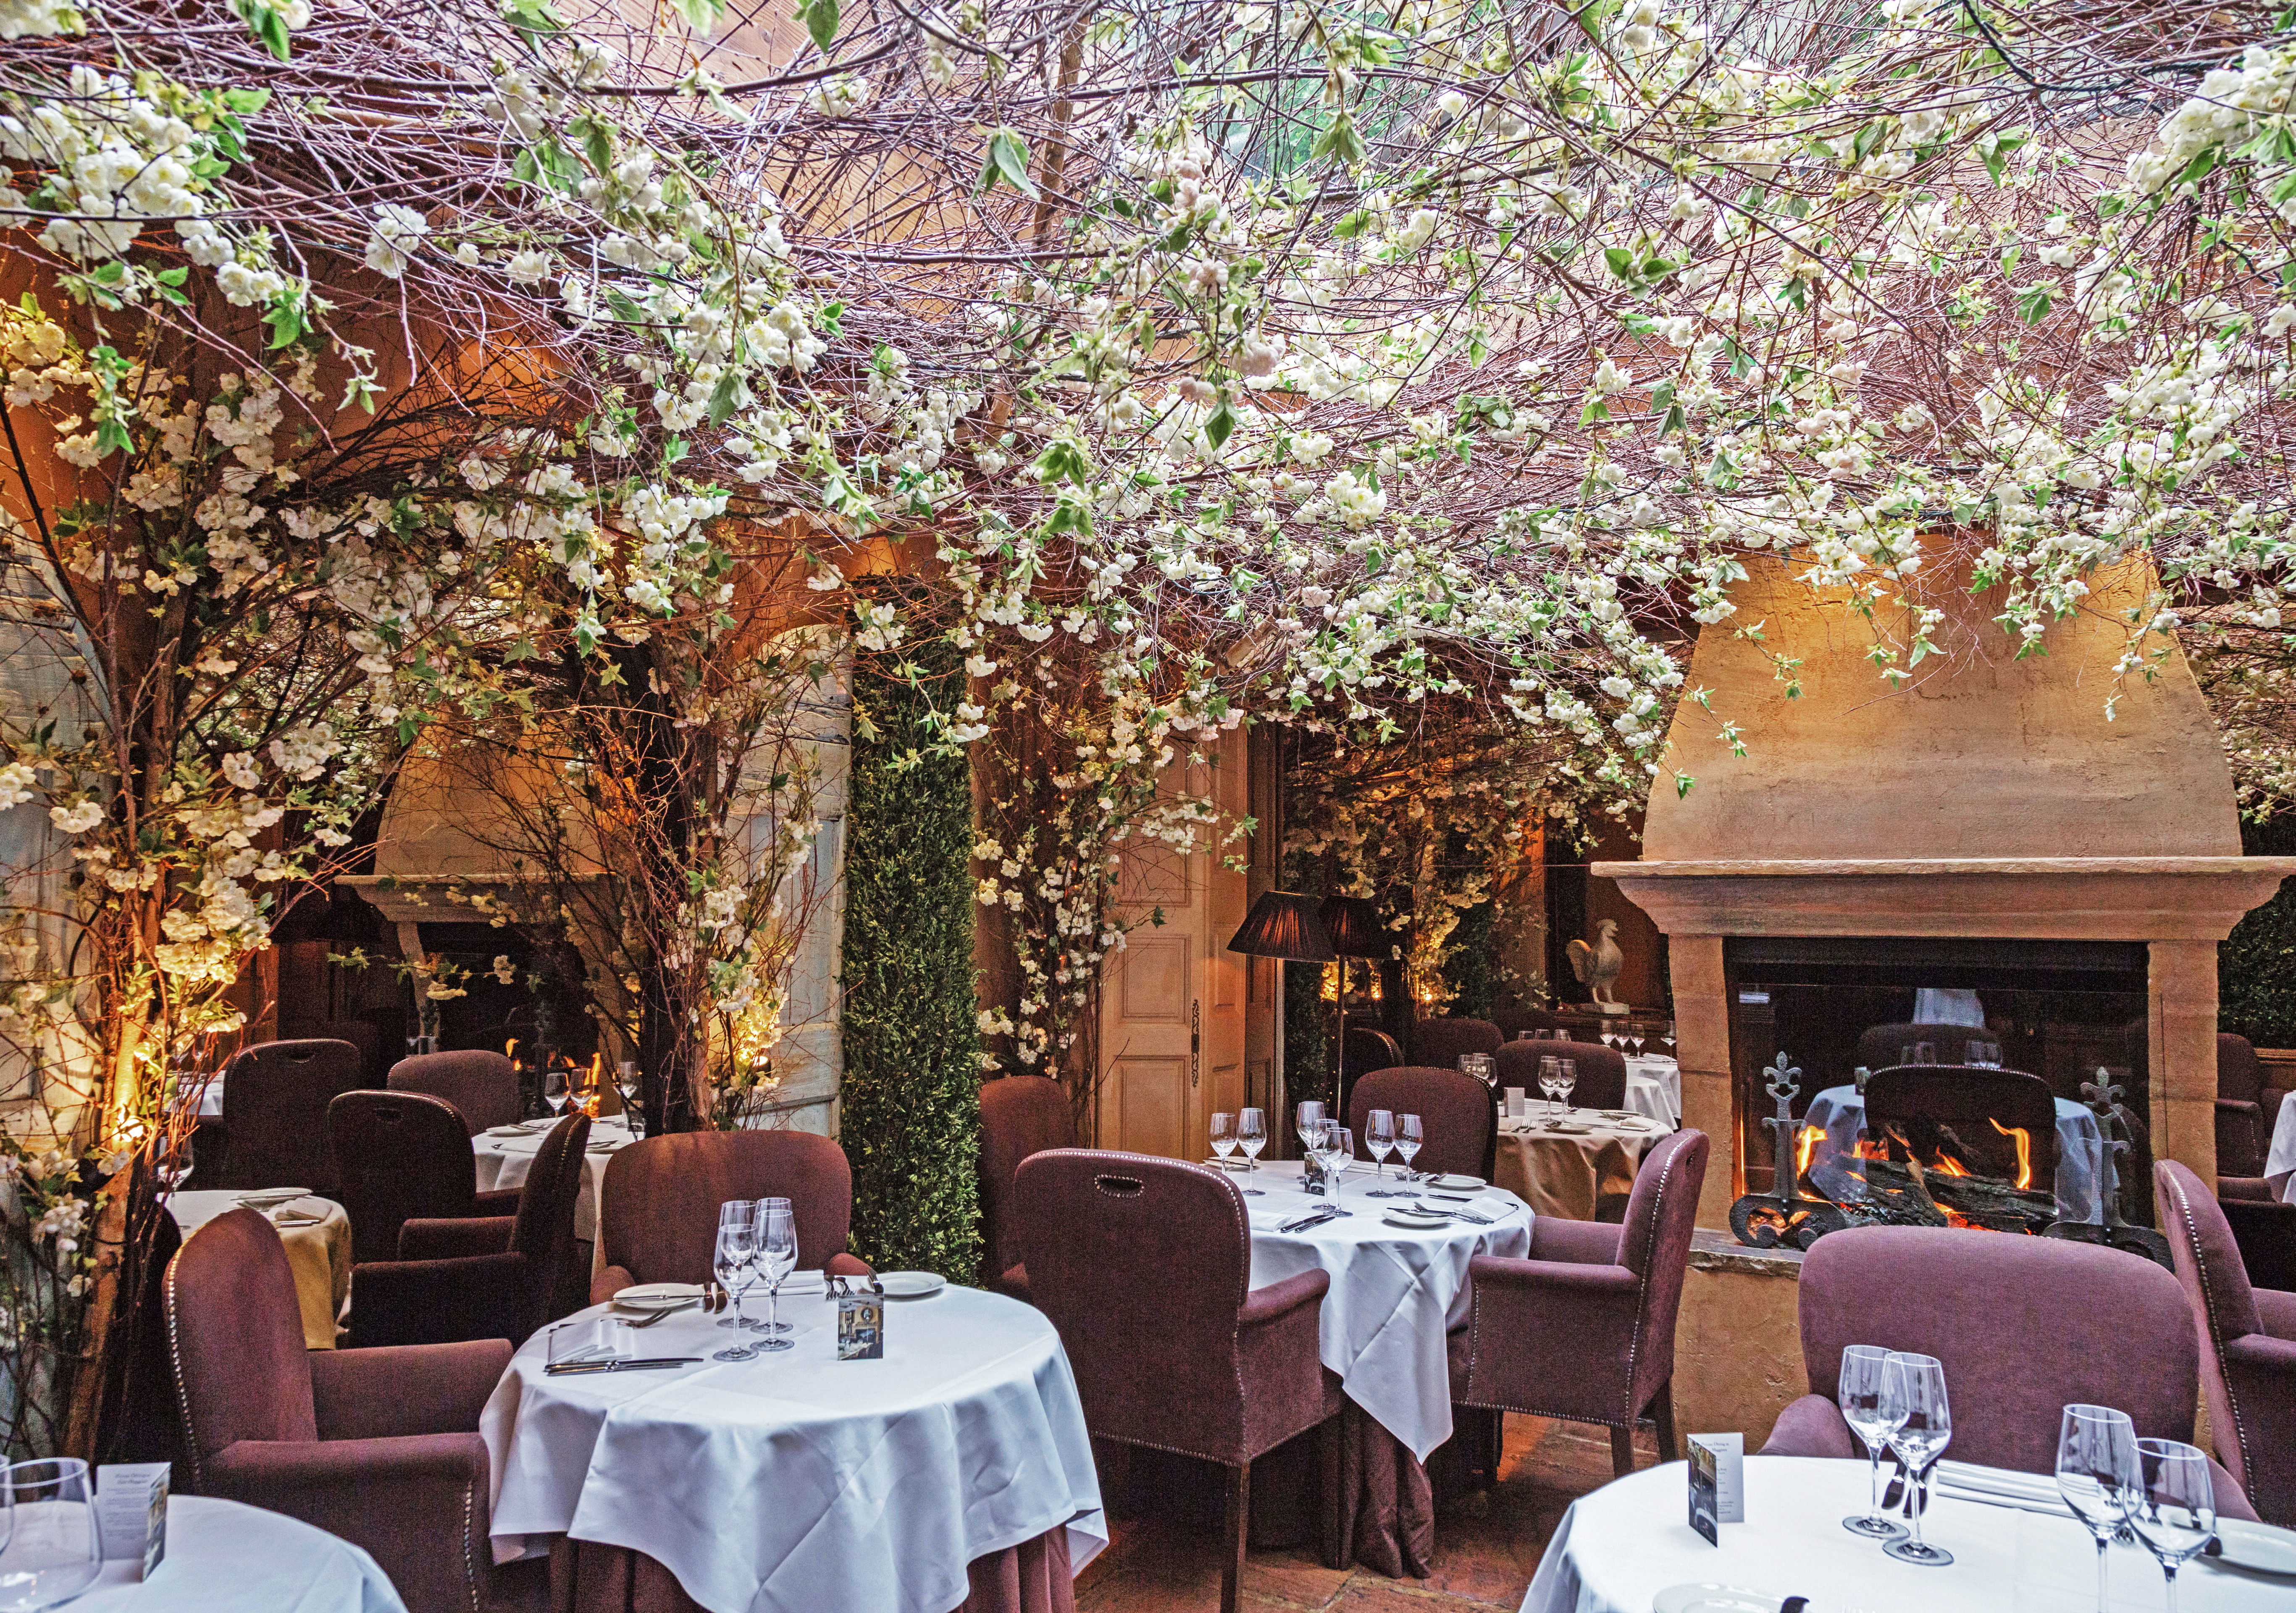 The Most Restaurants In World